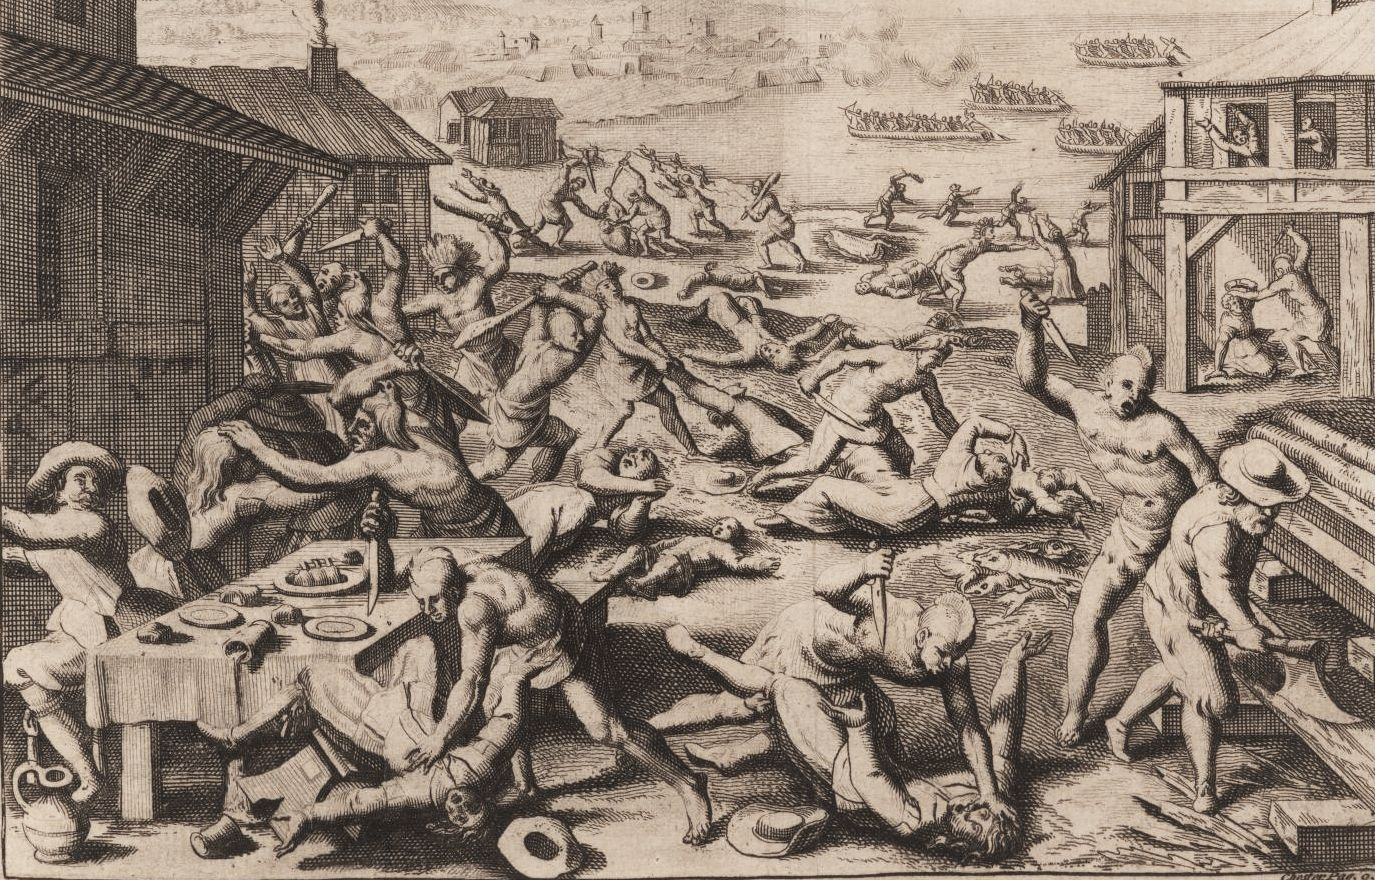 Theodor de Bry engraved a dramatic scene of Powhatan warriors attacking the Virigina settlement in 1622 while its inhabitants dine and work. Chief Opechancanough and his men entered Jamestown and once inside they massacred 347 English men and women. ©John Carter Brown Library, Providence, RI.